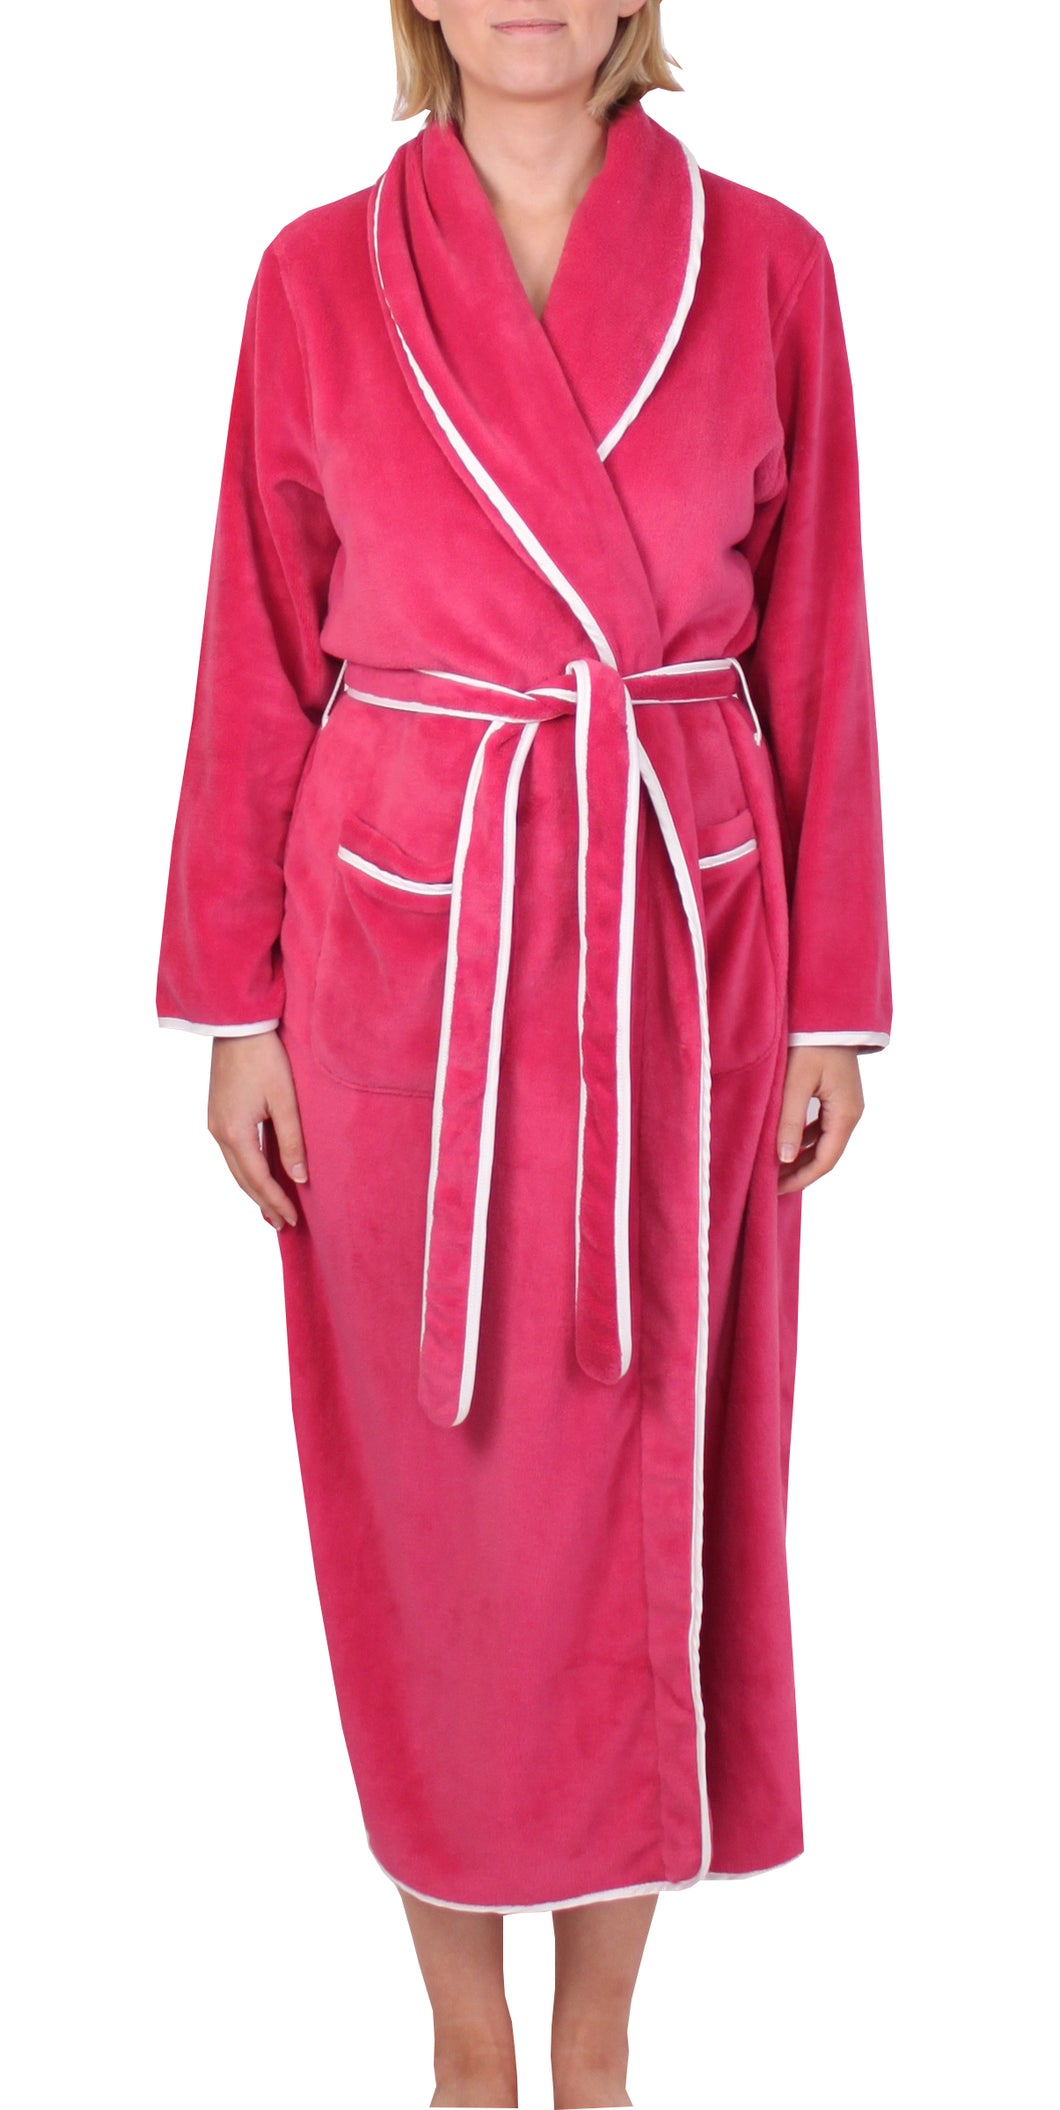 Satin Trim Robe Rose - Y806